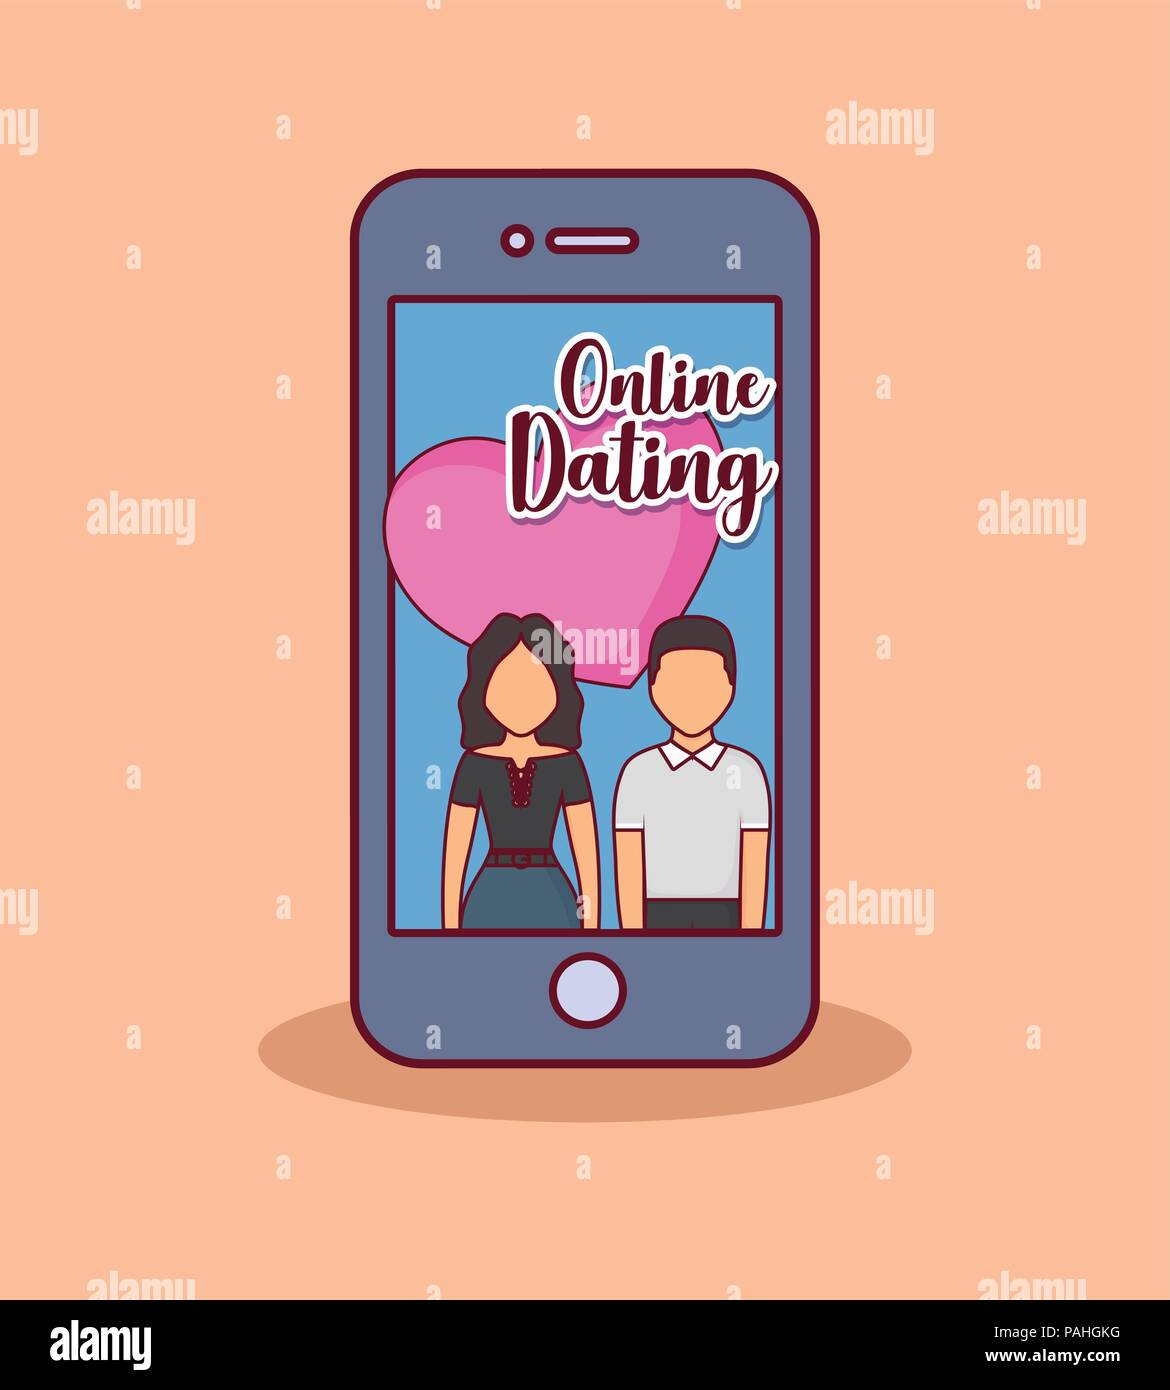 Cell phone online dating